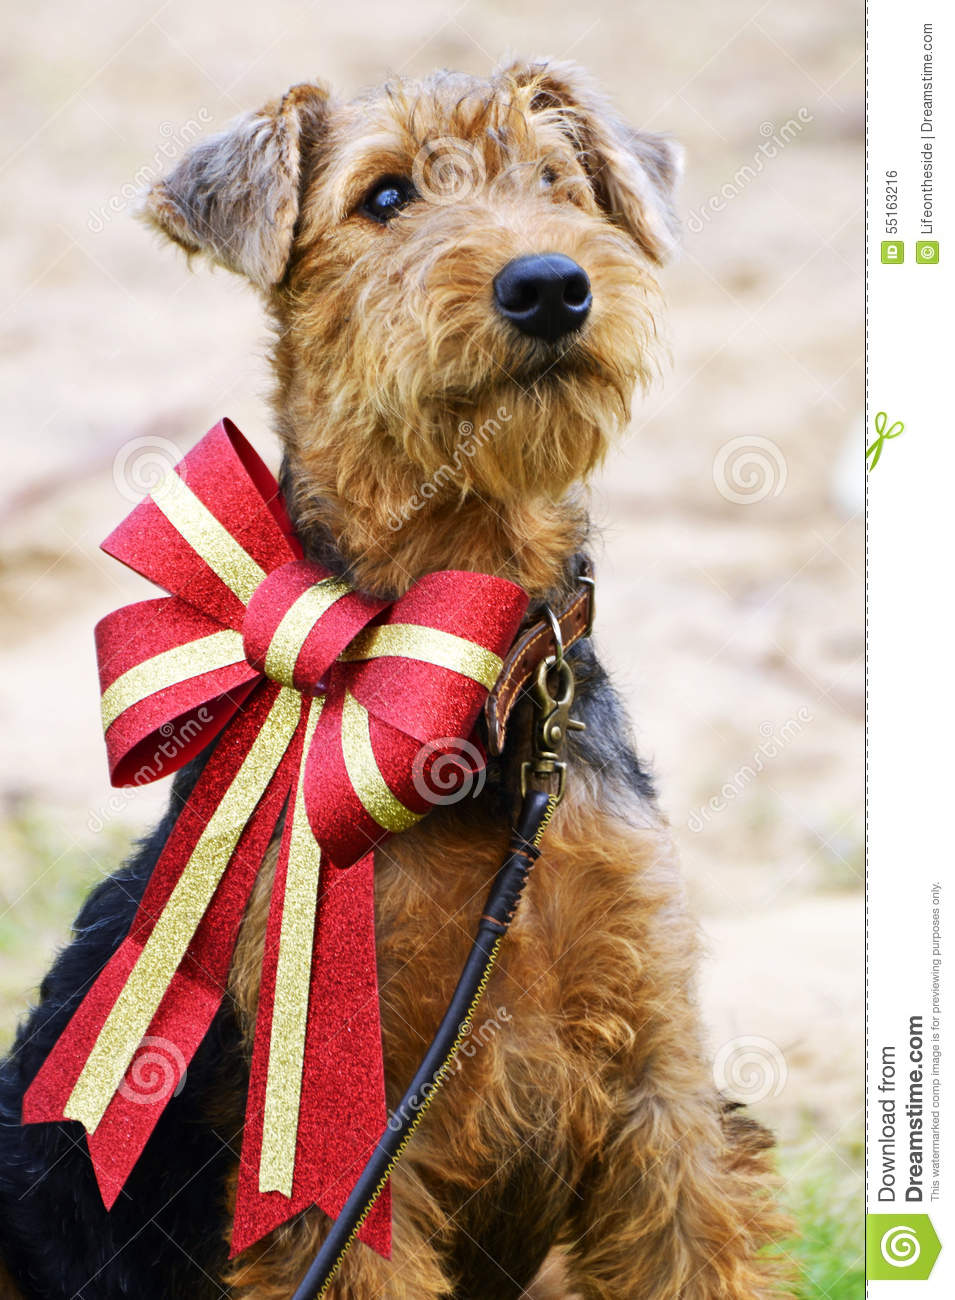 Airedale Terrier Fluffy Puppy Dog In Big Sparkly Christmas